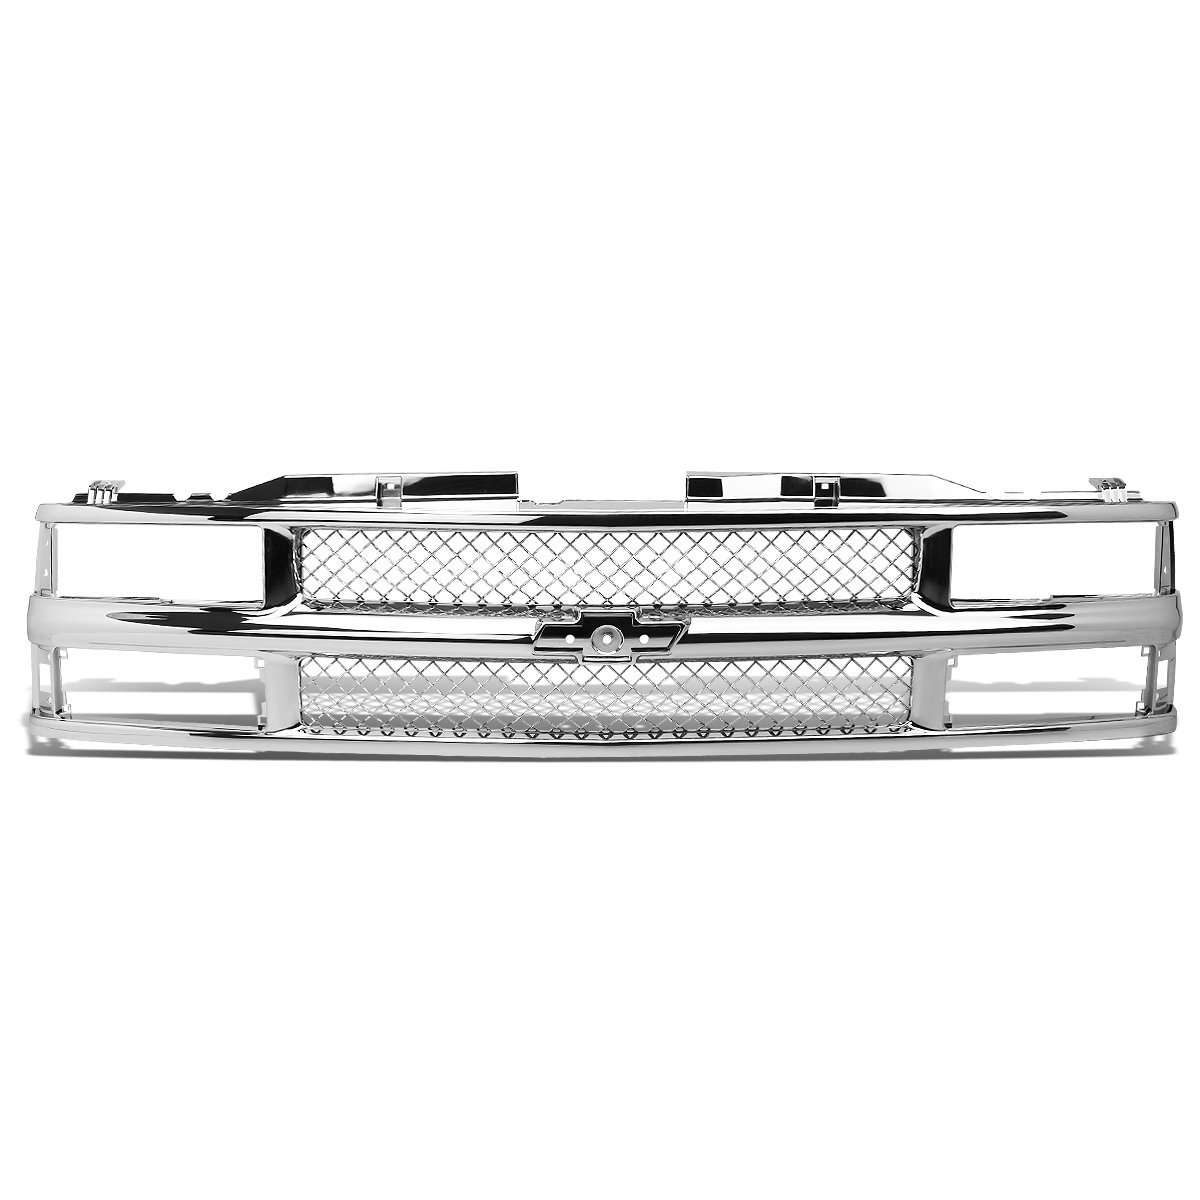 All Chevy 98 chevy bumper : 94-98 Chevy C10 C/K-Series Chrome Meshed ABS Plastic Front Bumper ...